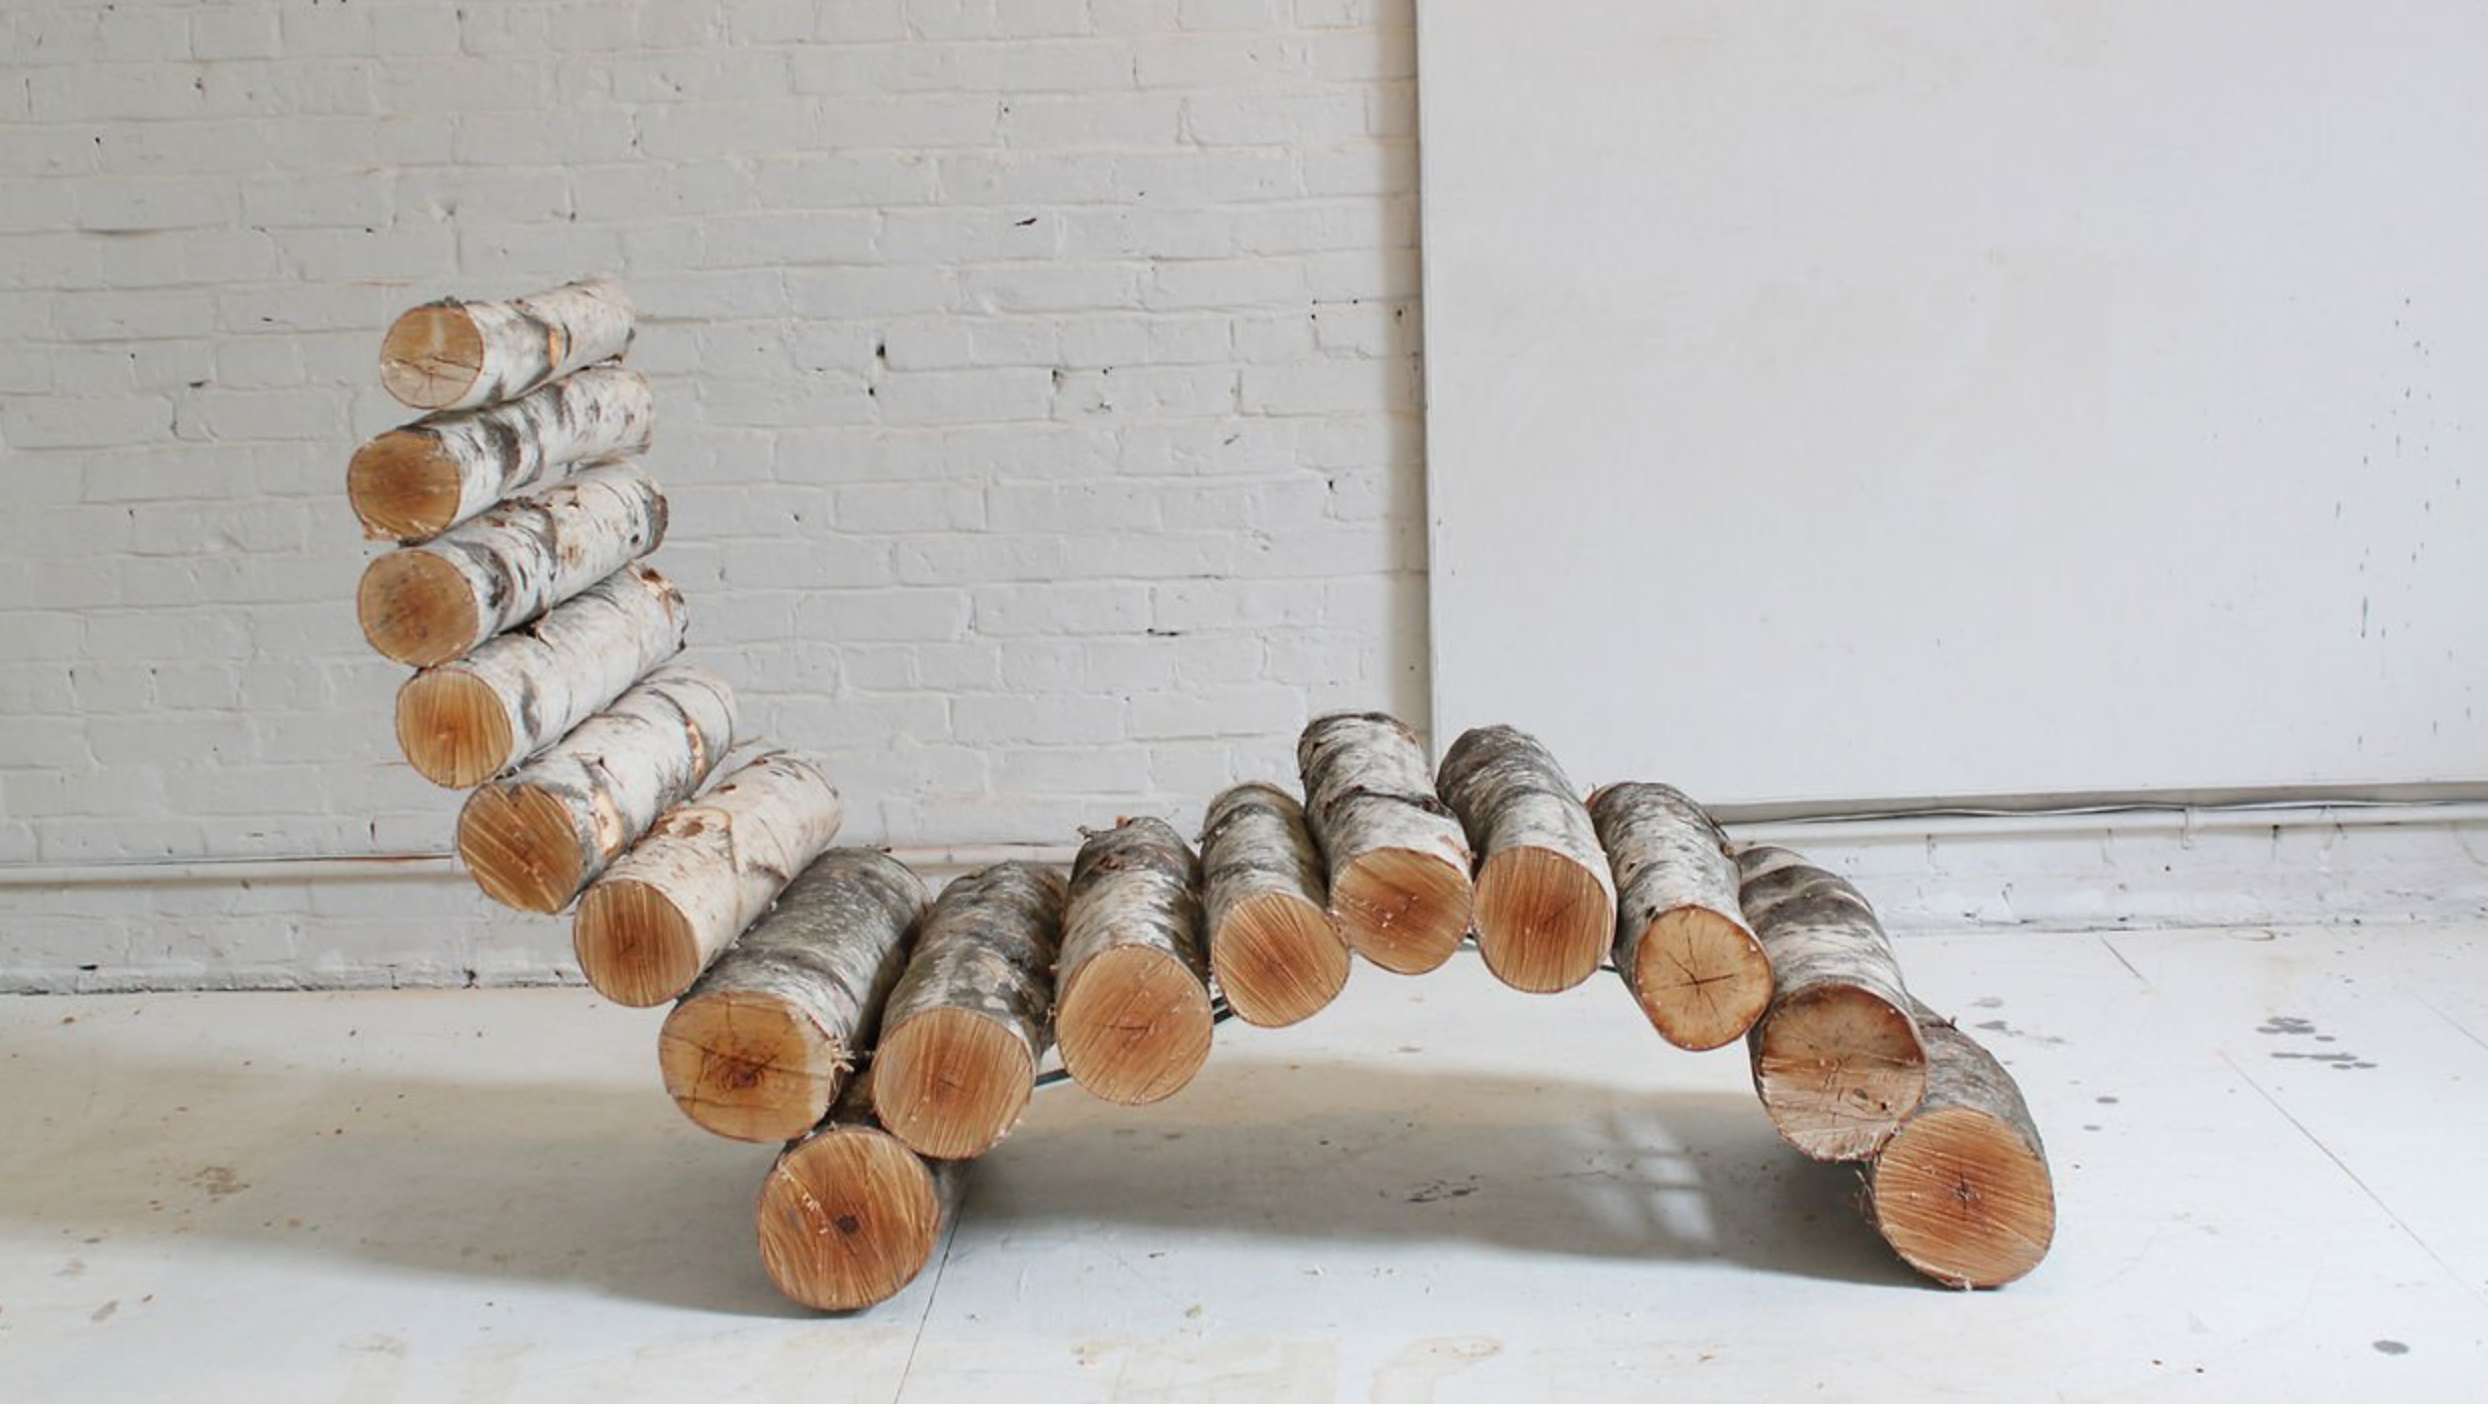 Check out this DIY Organic Birch Lounger from http://homemade-modern.com/ep14-log-lounger/